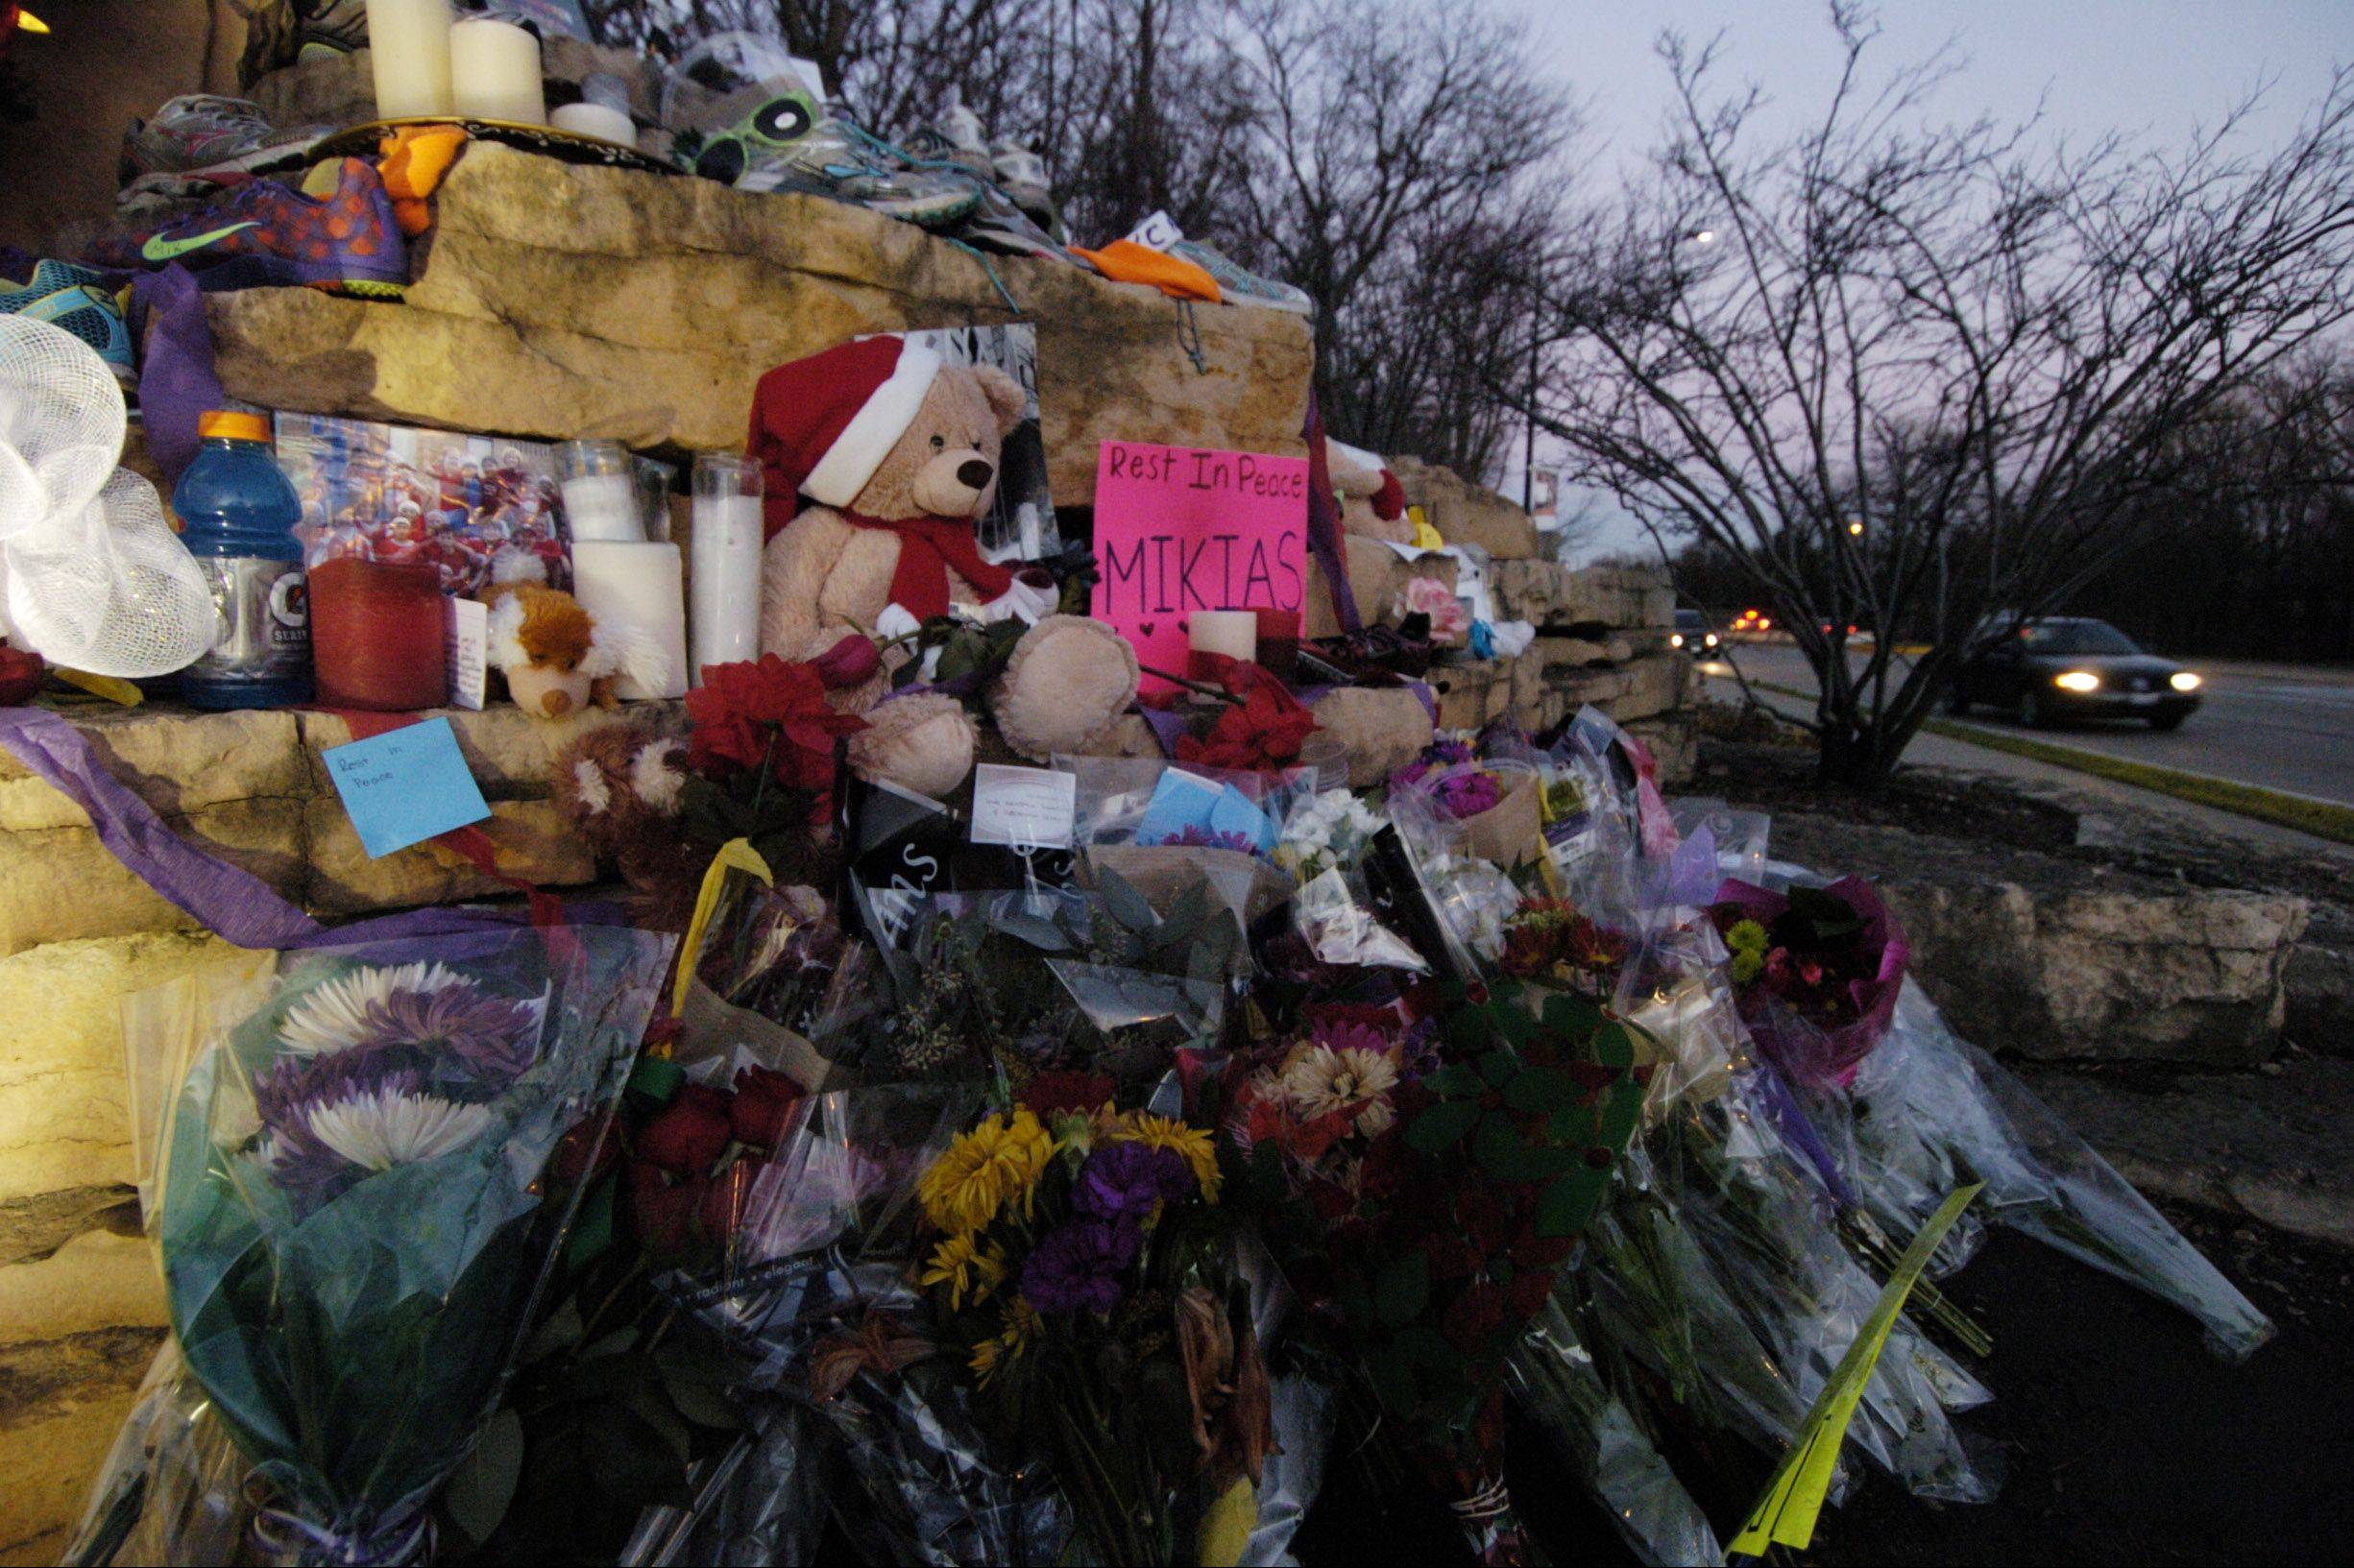 A roadside memorial honoring Schaumburg High School Senior Mikias Tibebu has been set up at the intersection of Branchwood Drive and Schaumburg Road, where he was struck by a hit-and-run driver last weekend.